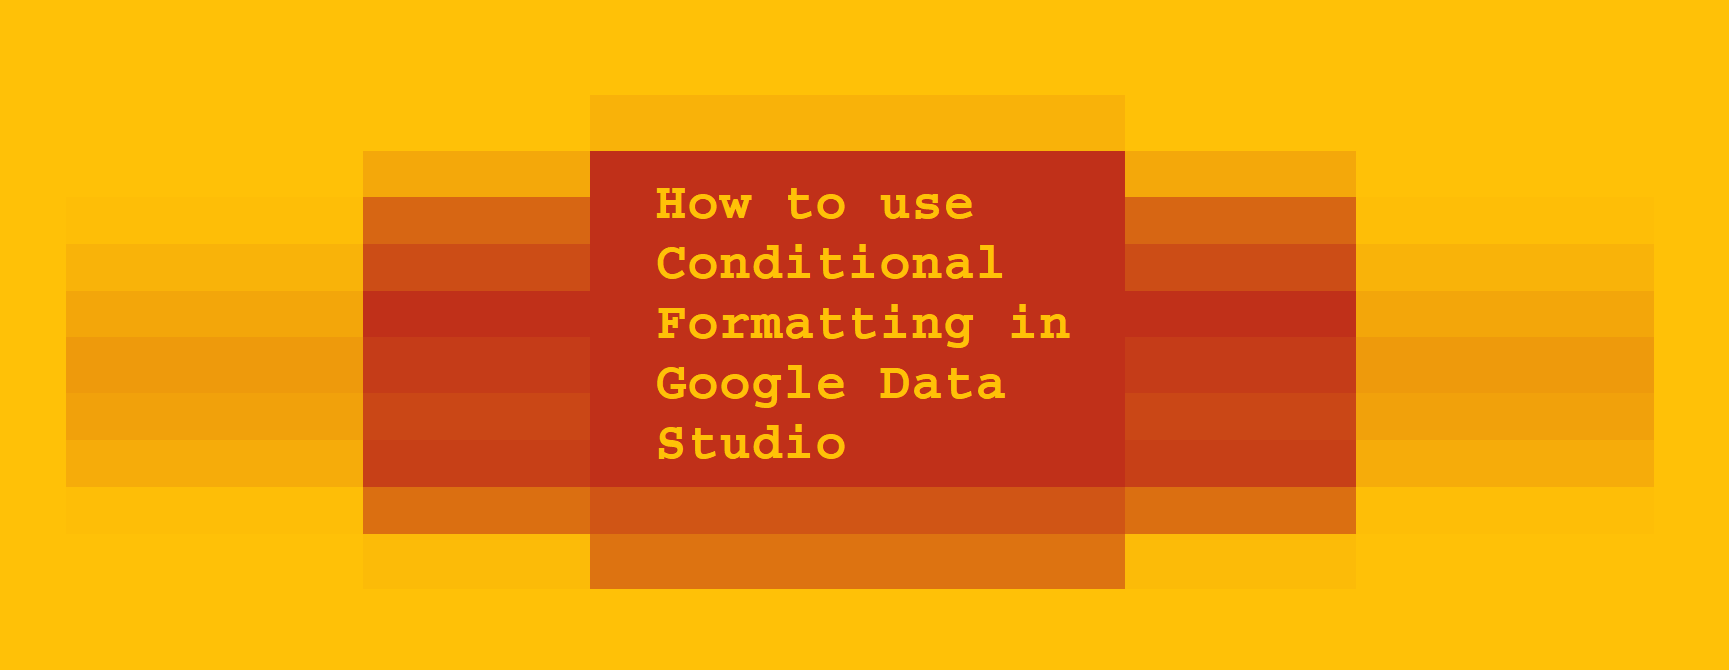 How to use Conditional Formatting in Google Data Studio